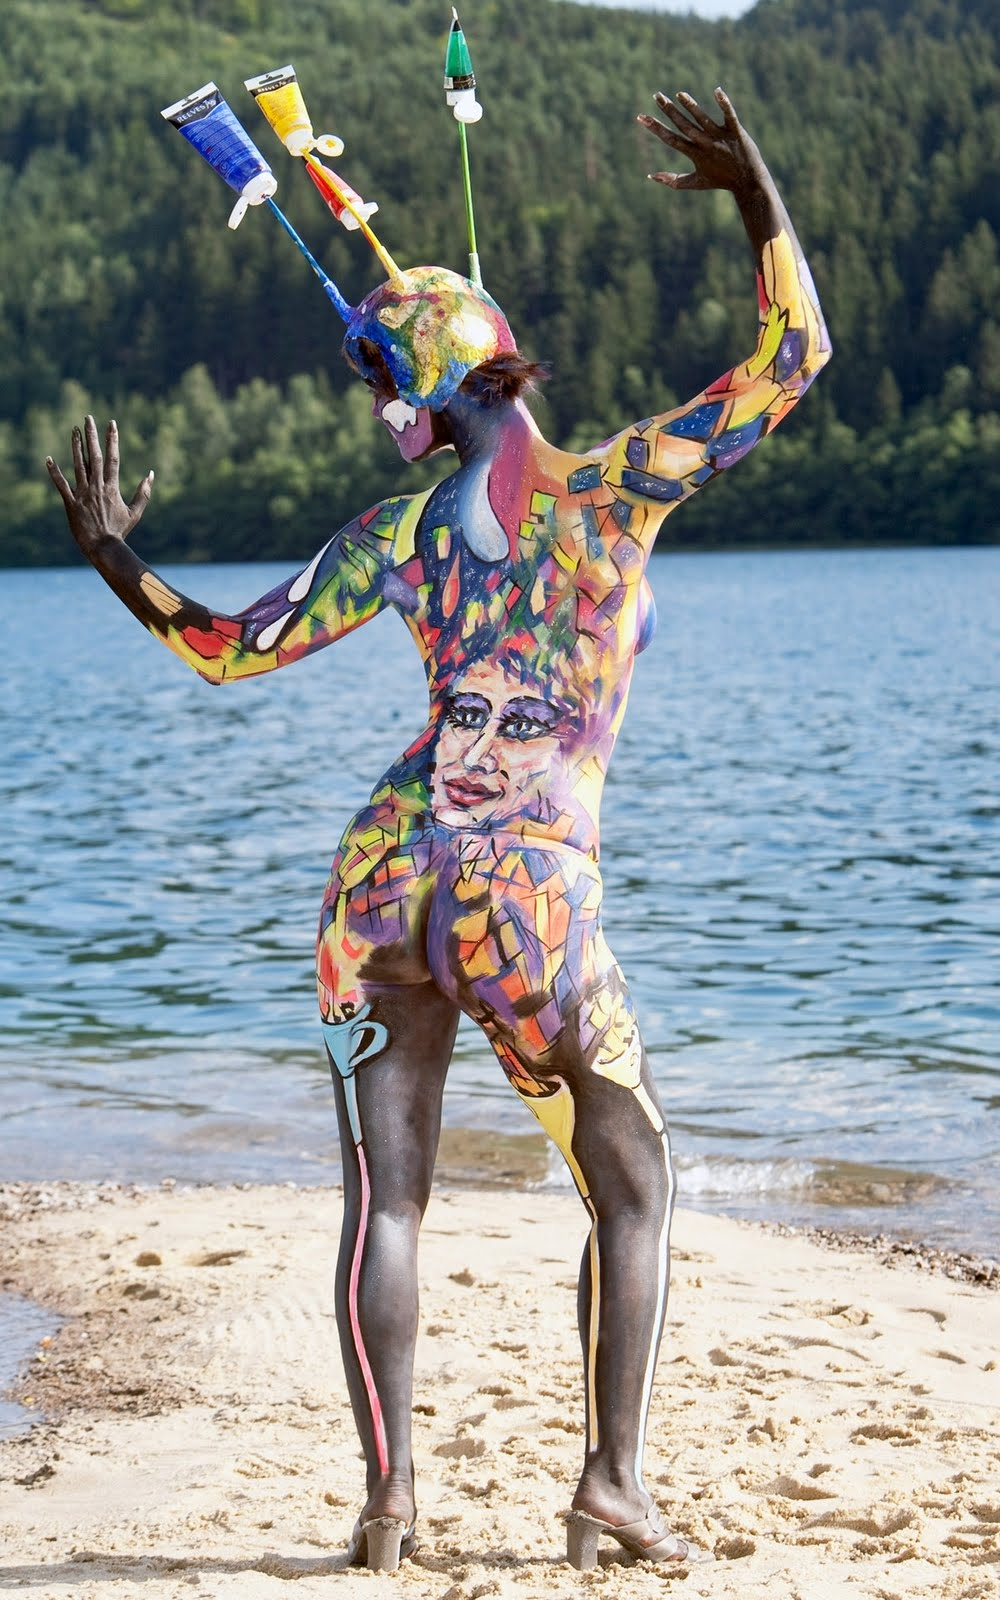 high resolution wallpapers & movies: bodyart-vertical hq